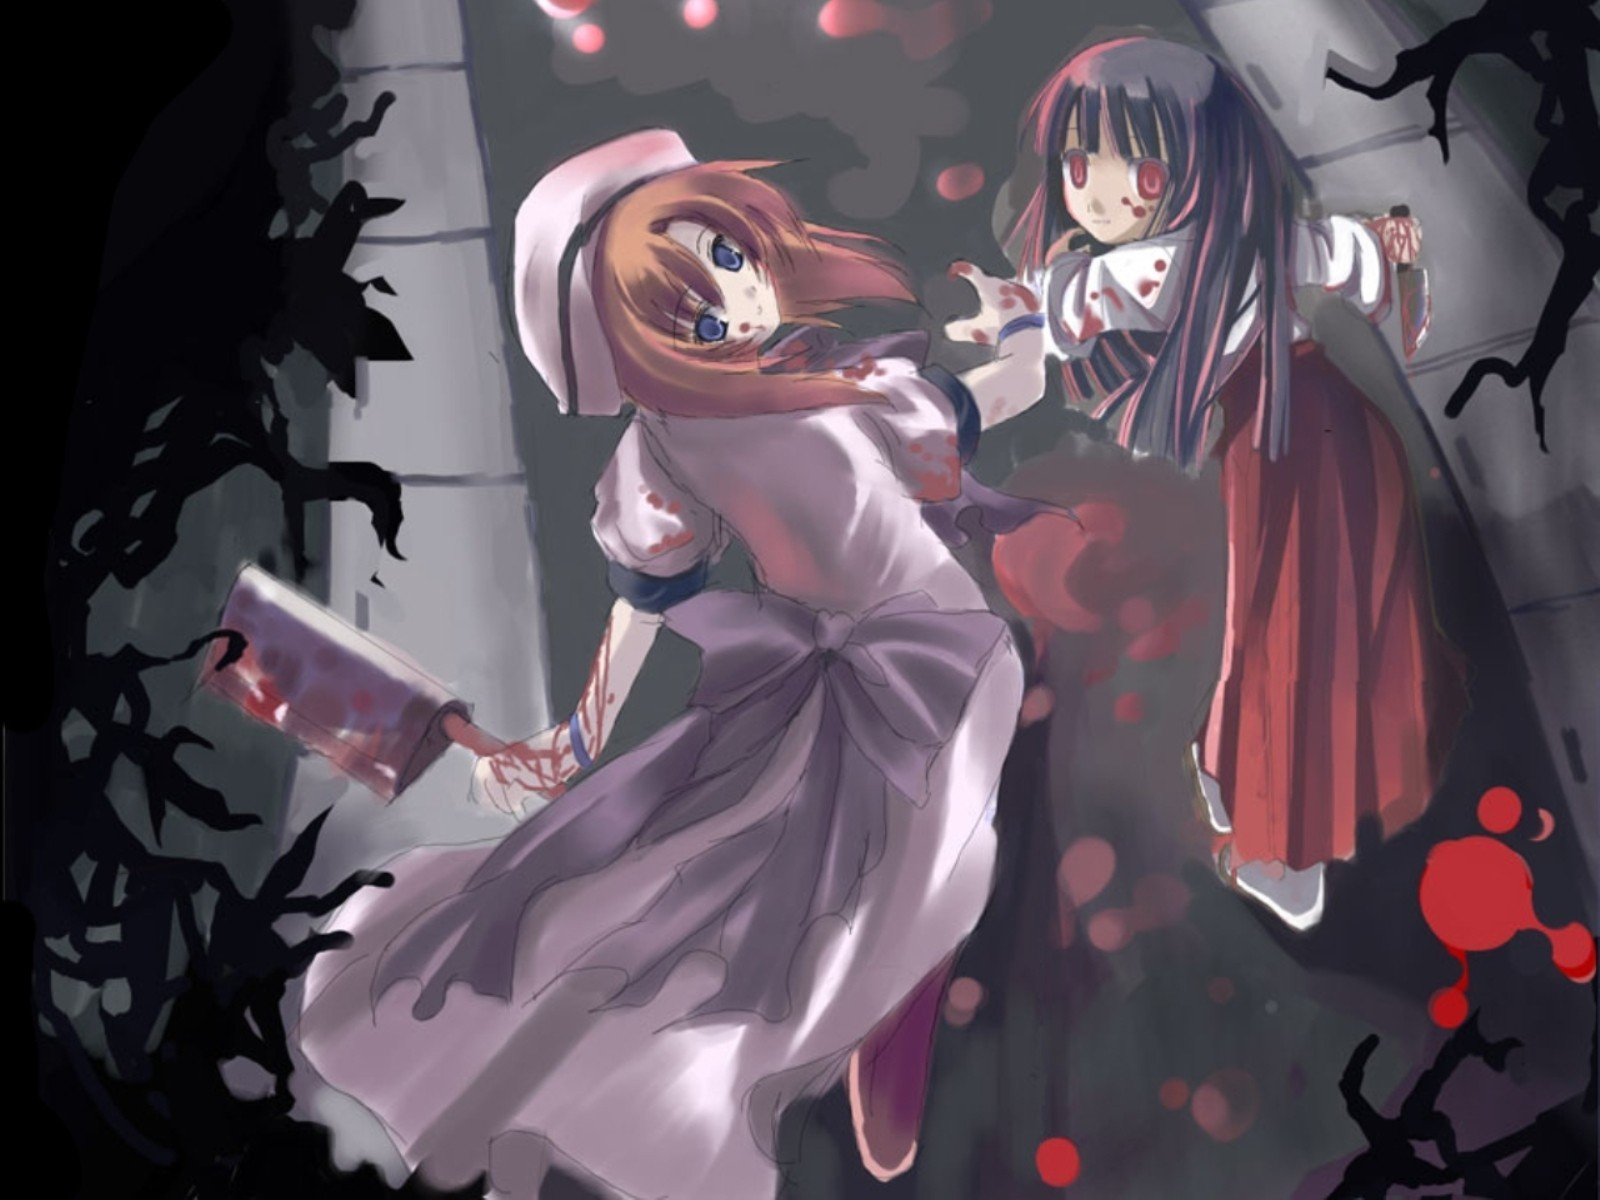 higurashi no naku koro HD Wallpaper